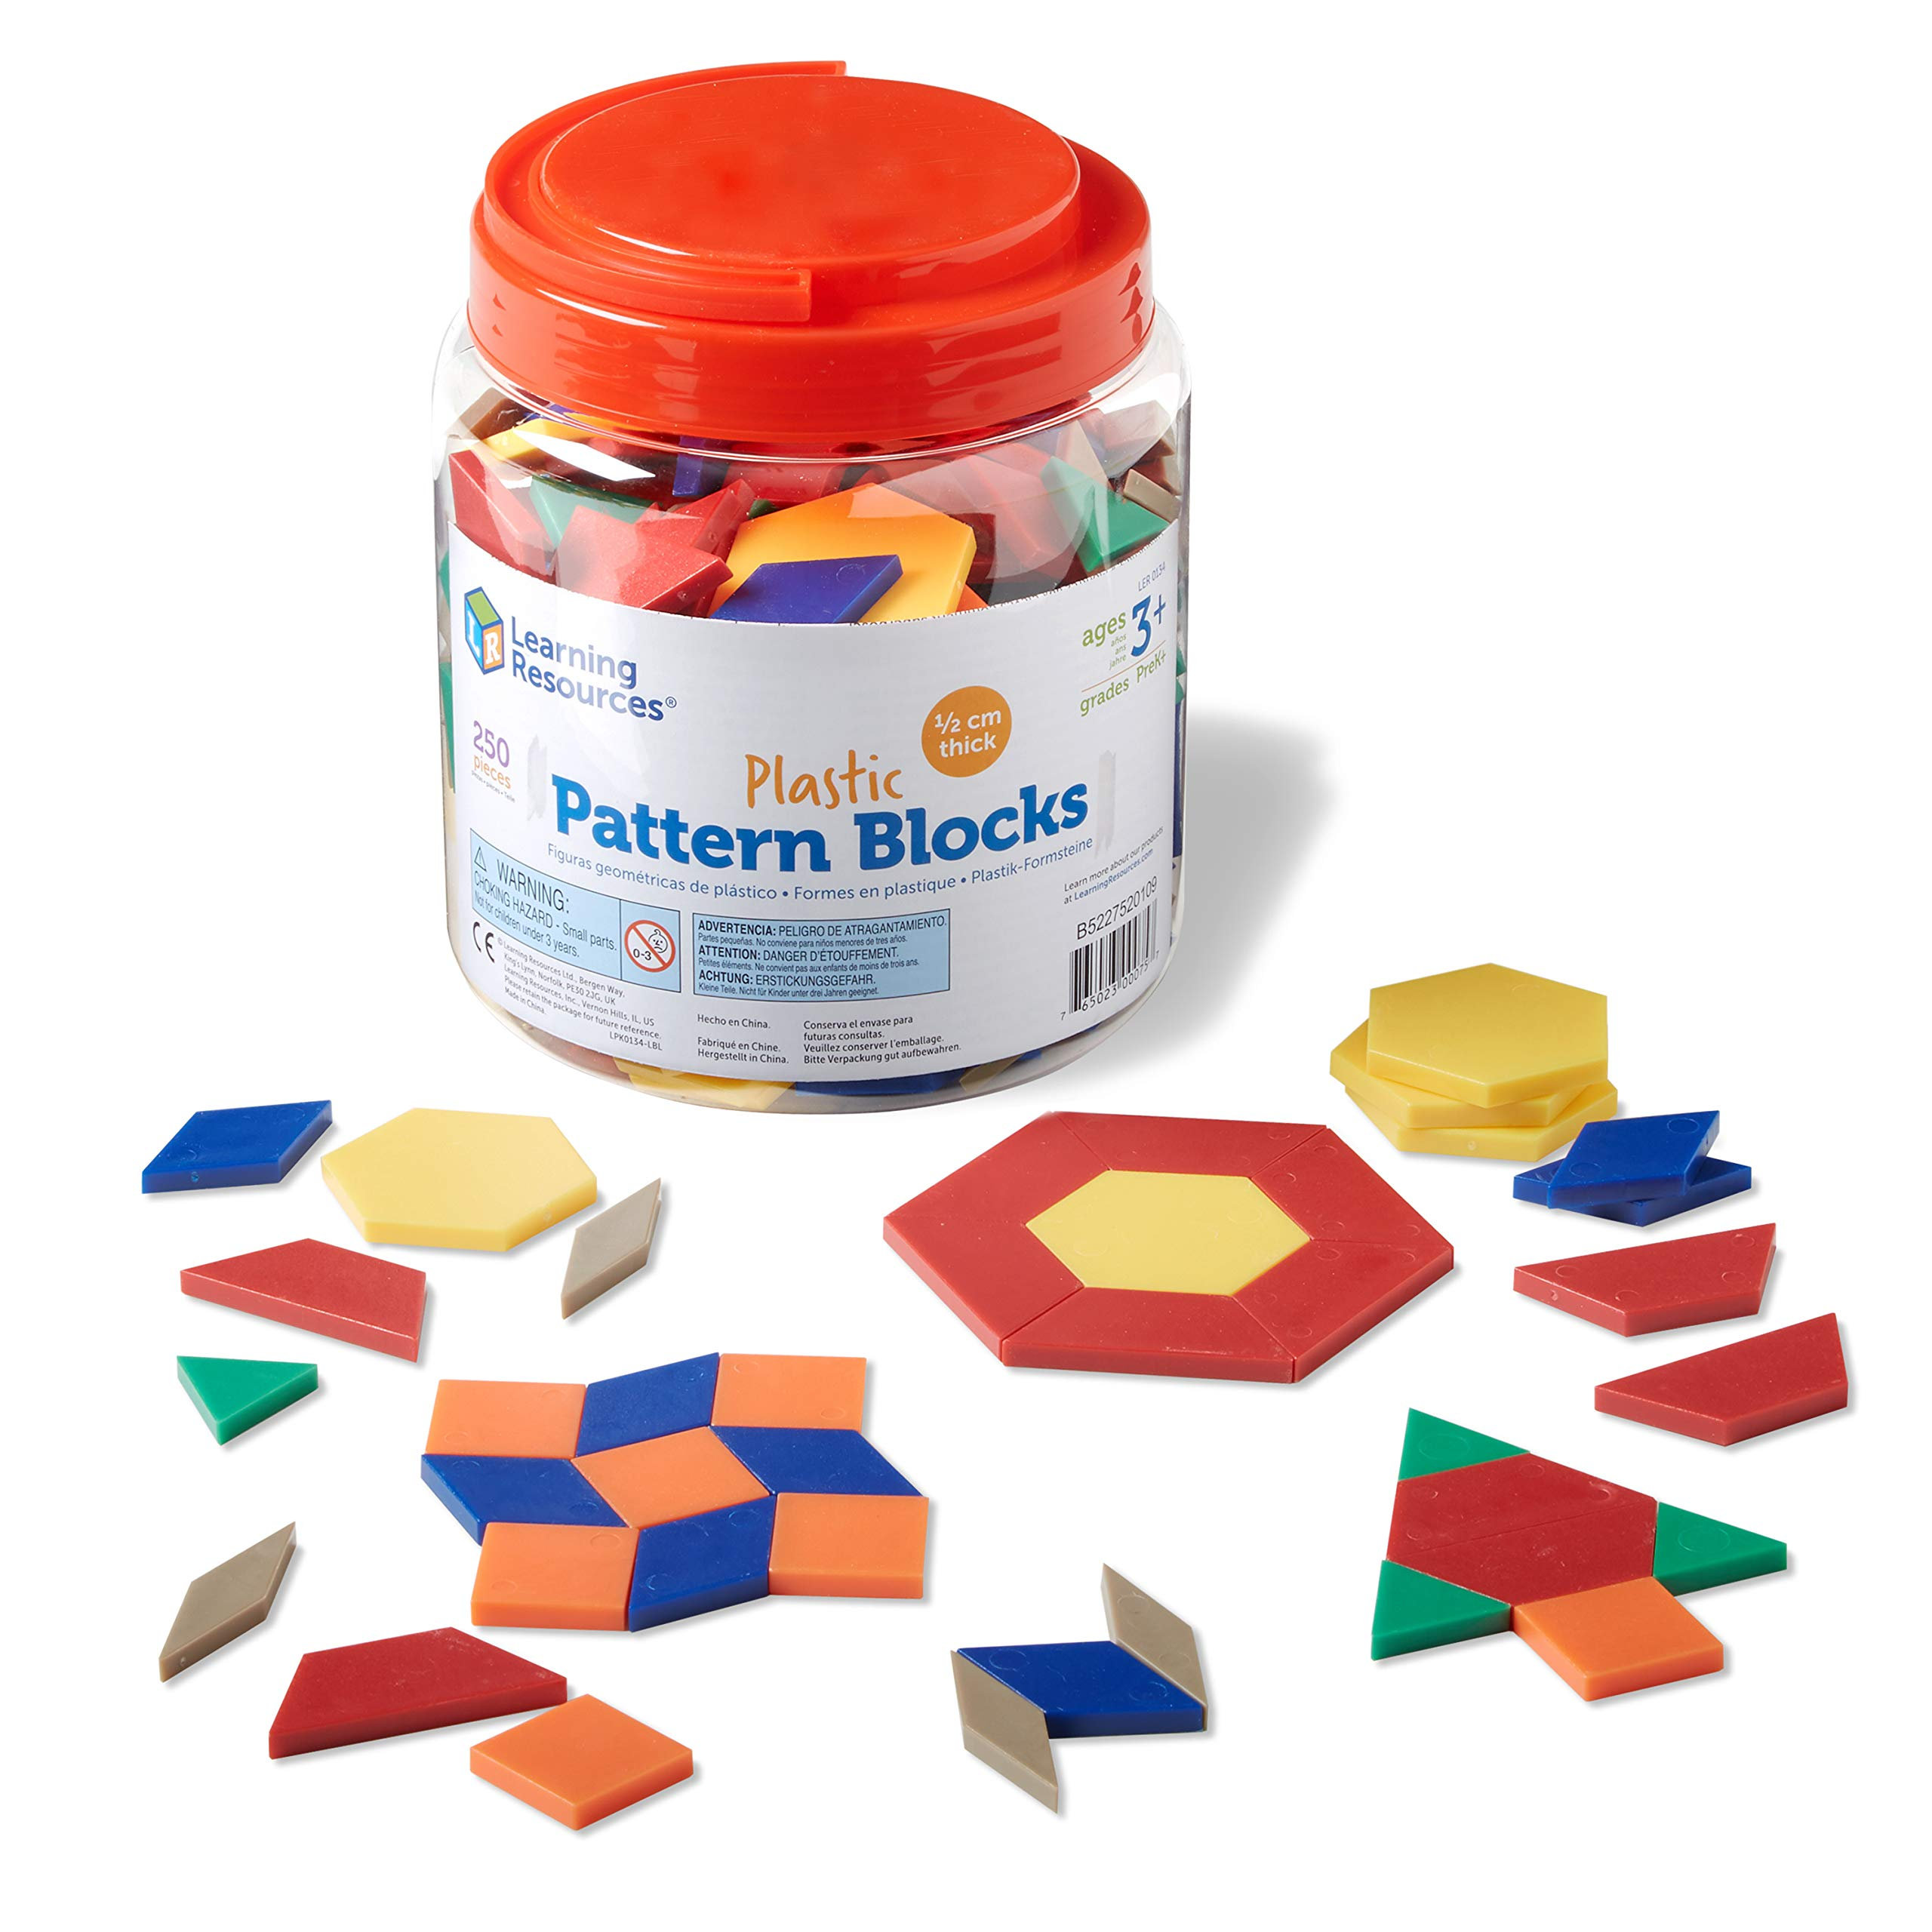 Learning Resources Plastic Pattern Blocks, Math Games for Kindergarten, Homeschool, Shape Recognition, Early Math Skills, Easter Gifts for Kids, Set of 250, Ages 4+